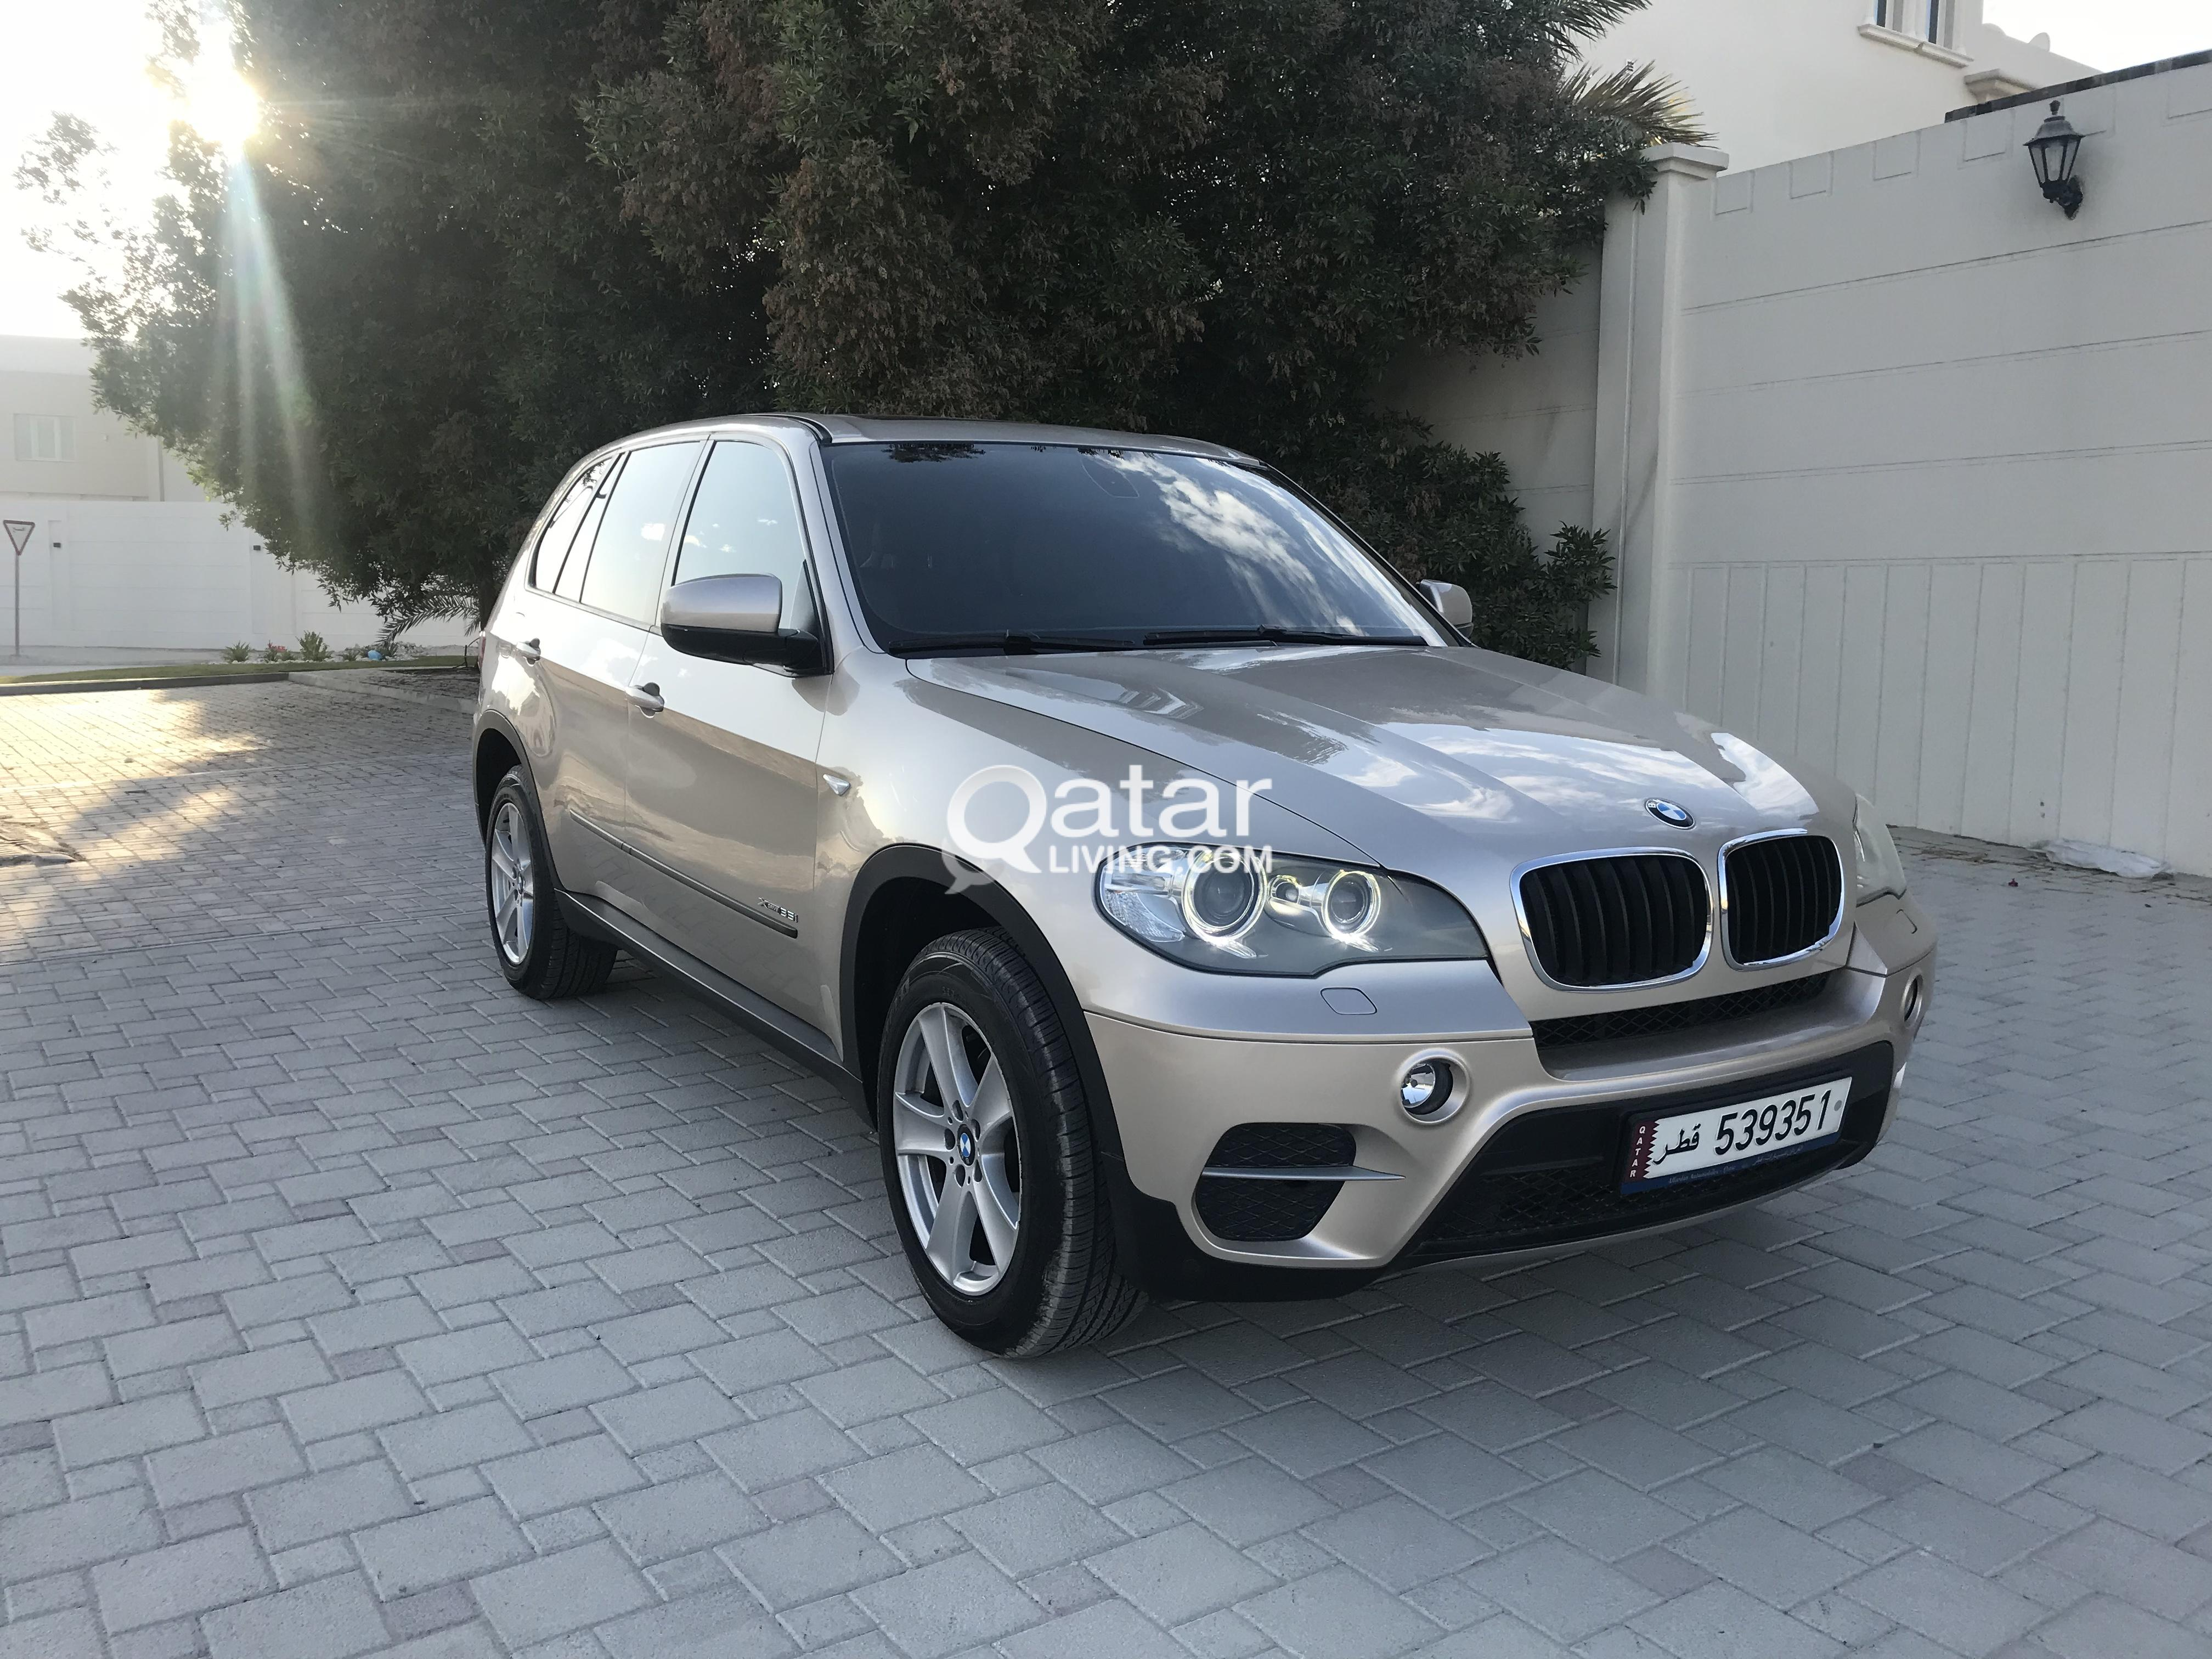 Bmw Twin Turbo V6 >> Bmw X5 3 5l V6 Twin Turbo Qatar Living